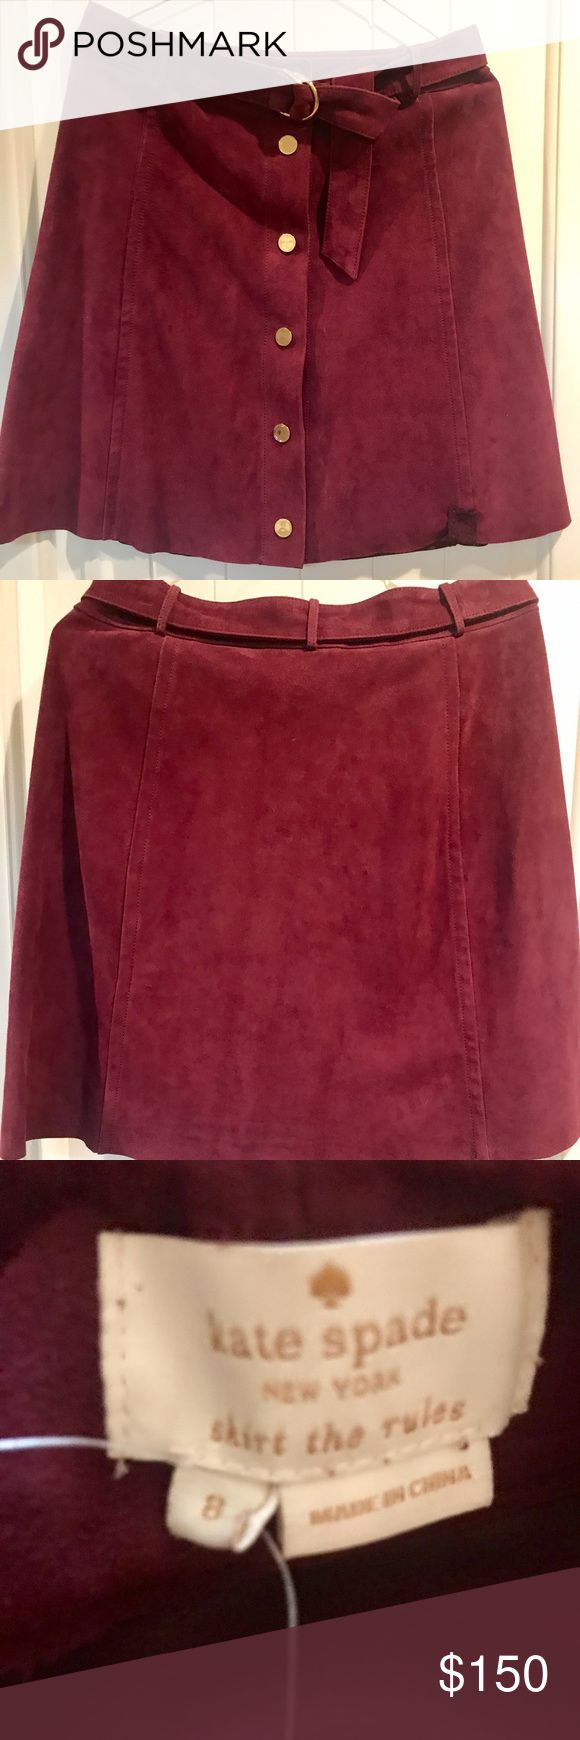 ♠️KATE SPADE NEW YORK SUEDE A-LINE SKIRT♠️ ♠️Velvety-soft goat suede/ Burgundy hue ♠️ Gleaming snaps down the front center ♠️ Removable double D-ring belt ♠️ No pockets ♠️ Unlined ♠️ Professional leather clean ♠️ By Kate Spade New York; Imported ♠️ NWT - Bought at Nordstrom Rack (Please, inspect all pictures. There are slight imperfections on the suede that a cleaning could remove.) See picture #4 and #5 ♠️ Buy at your discretion/No Returns ♠️Nothing has been altered by me. Bought as is now…